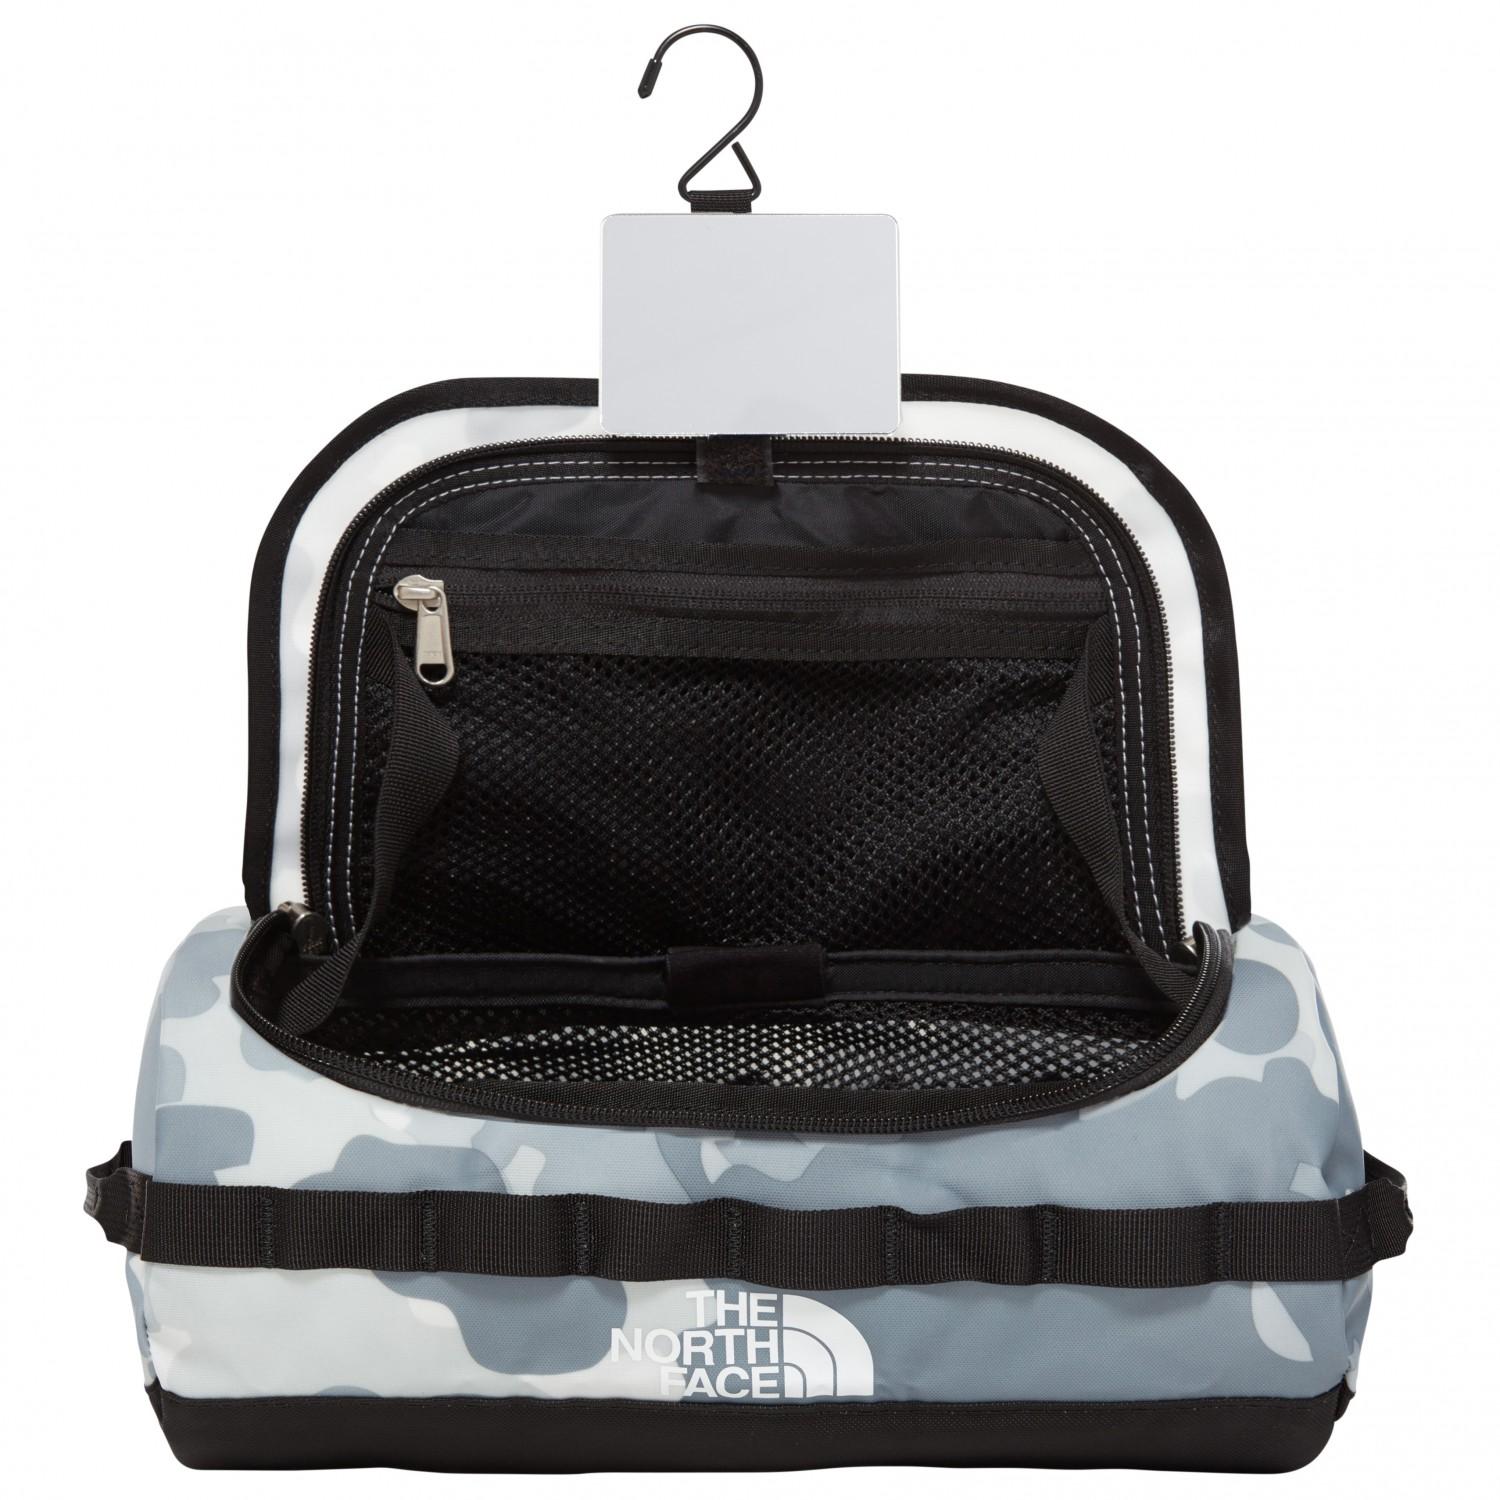 sleek fast delivery official supplier The North Face BC Travel Canister L - Necessaire online ...